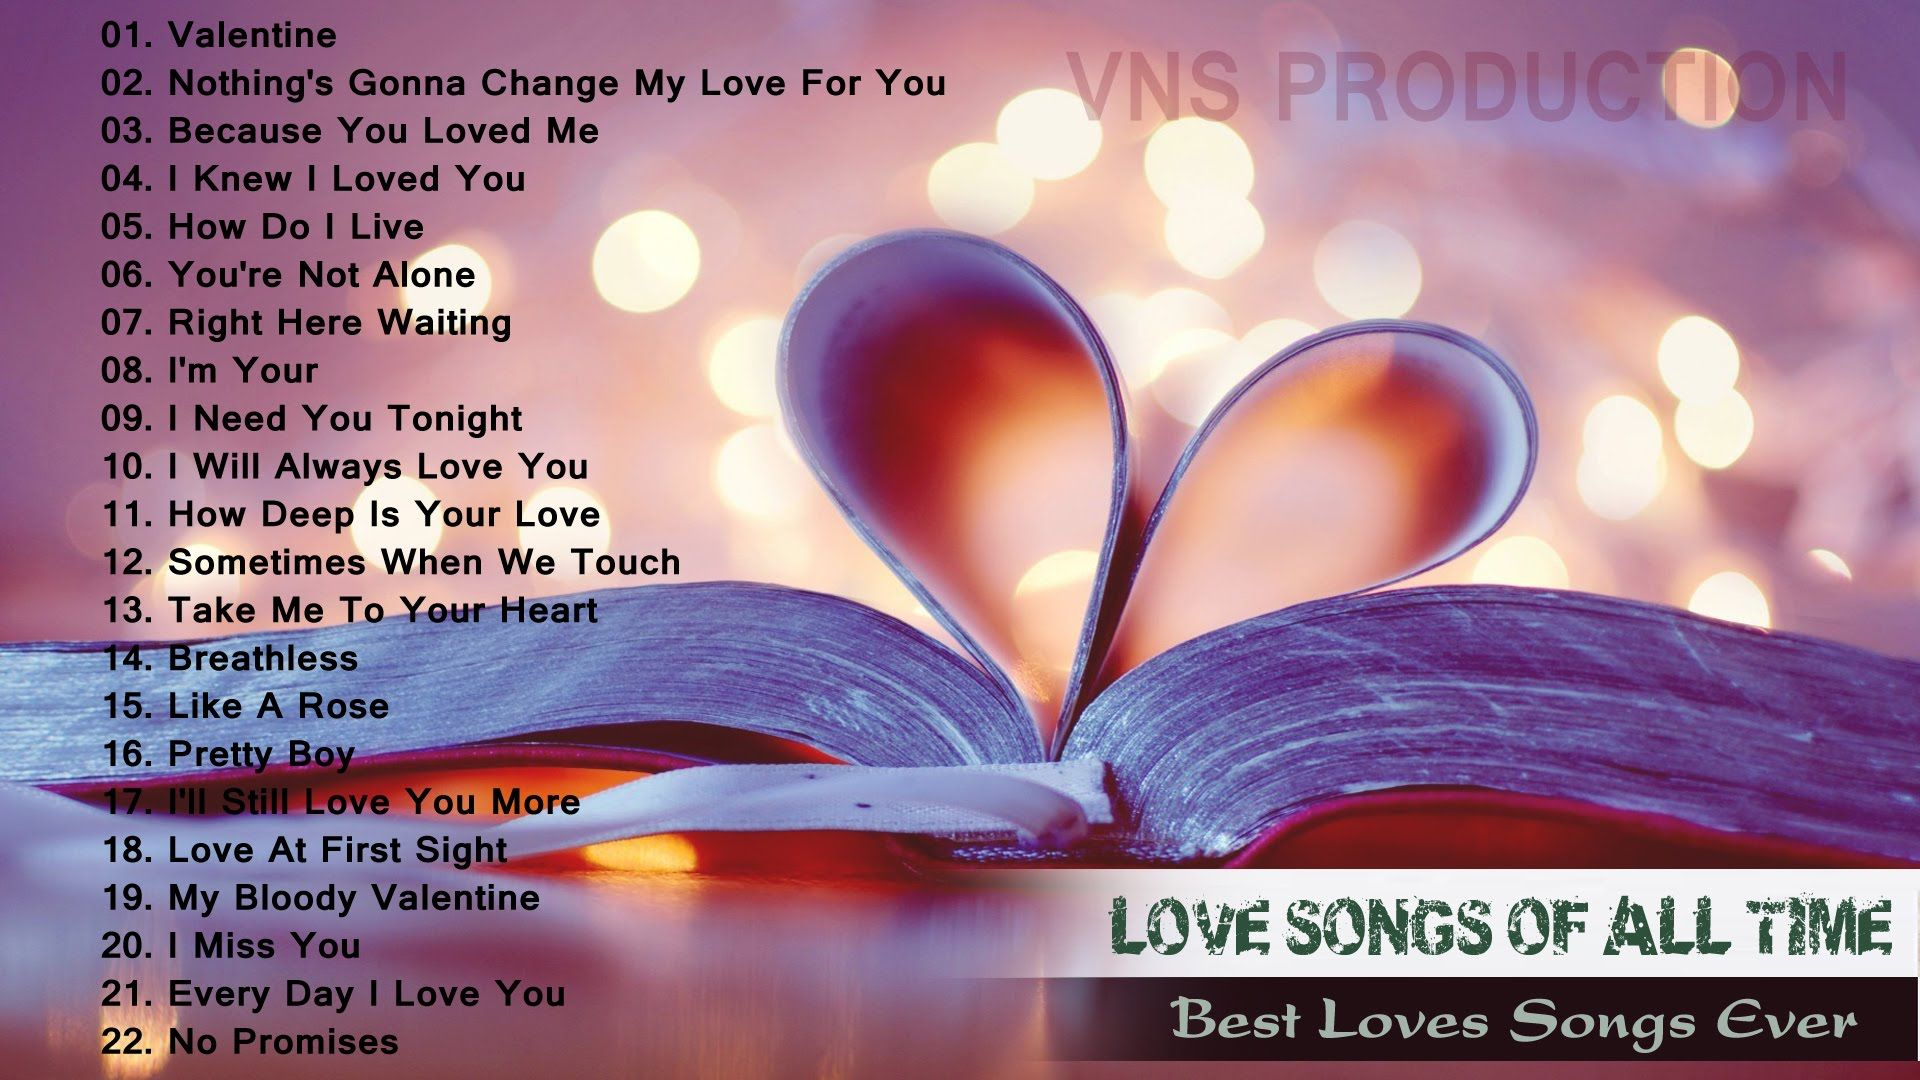 List of best love songs ever